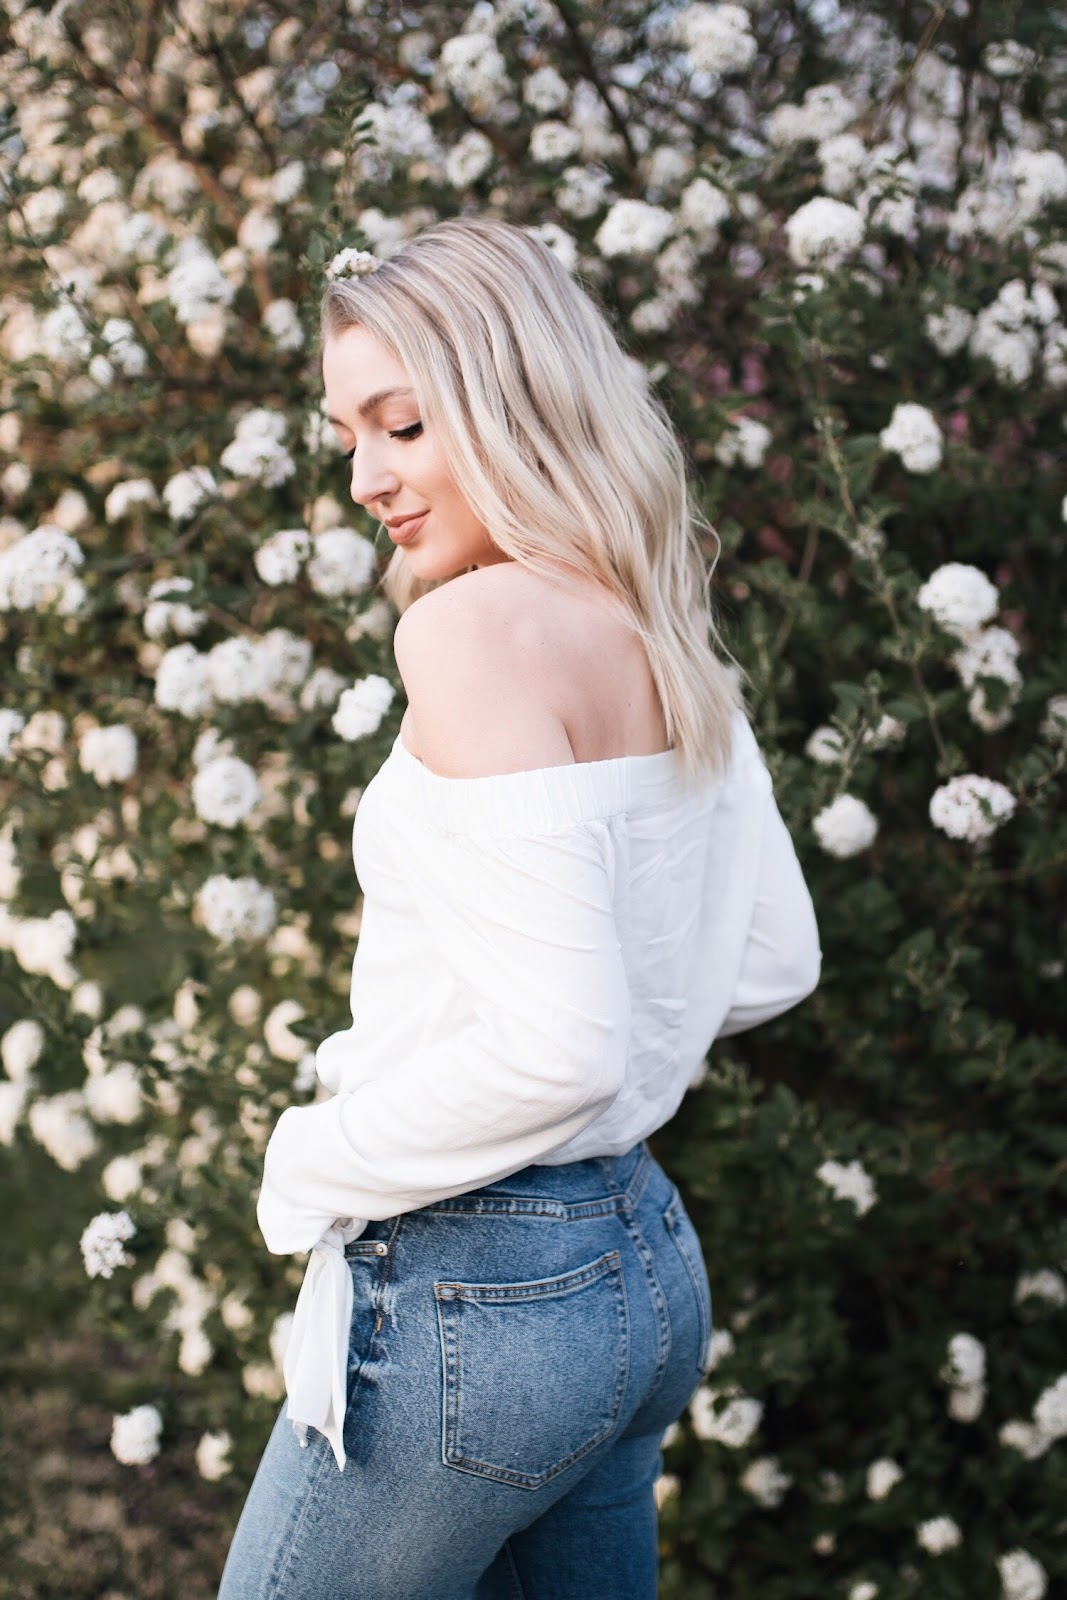 off-the-shoulder + high-waisted jeans